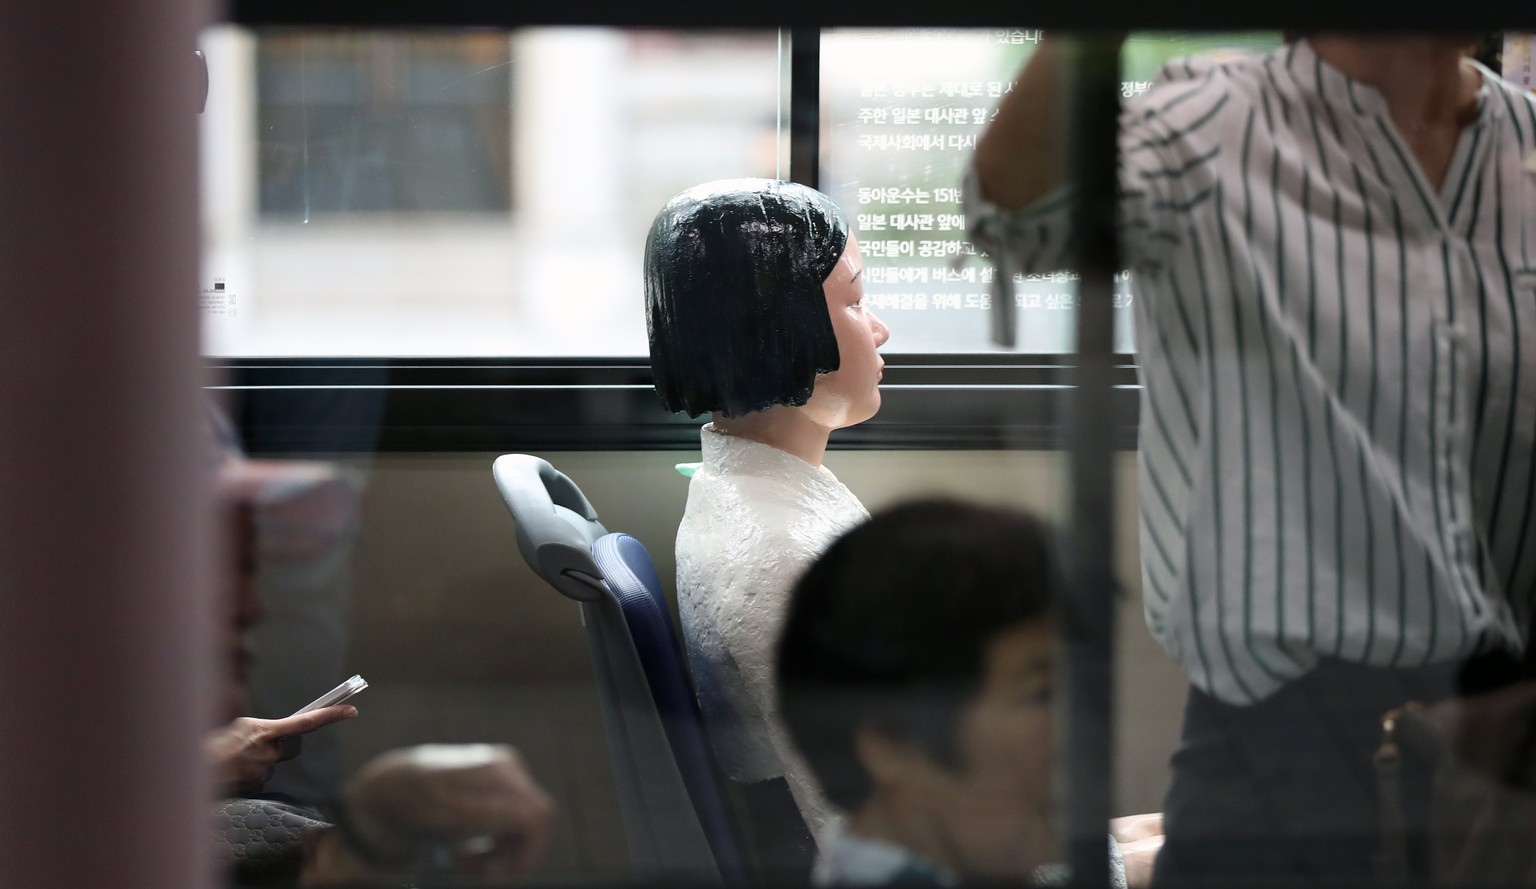 epa06143791 A 'comfort woman' statue is installed on a No. 151 line Seoul city bus in Seoul, South Korea, 14 August 2017, during the International Memorial Day for Comfort Women. Donga Bus Co. said it will install five such statues on its buses from 14 August through 30 September in order to provide children with a chance to learn the history of Japan's wartime occupation and atrocities. Comfort women are a euphemistic expression for Korean women who were forcibly taken to Japanese front-line military brothels during World War II.  EPA/YONHAP SOUTH KOREA OUT